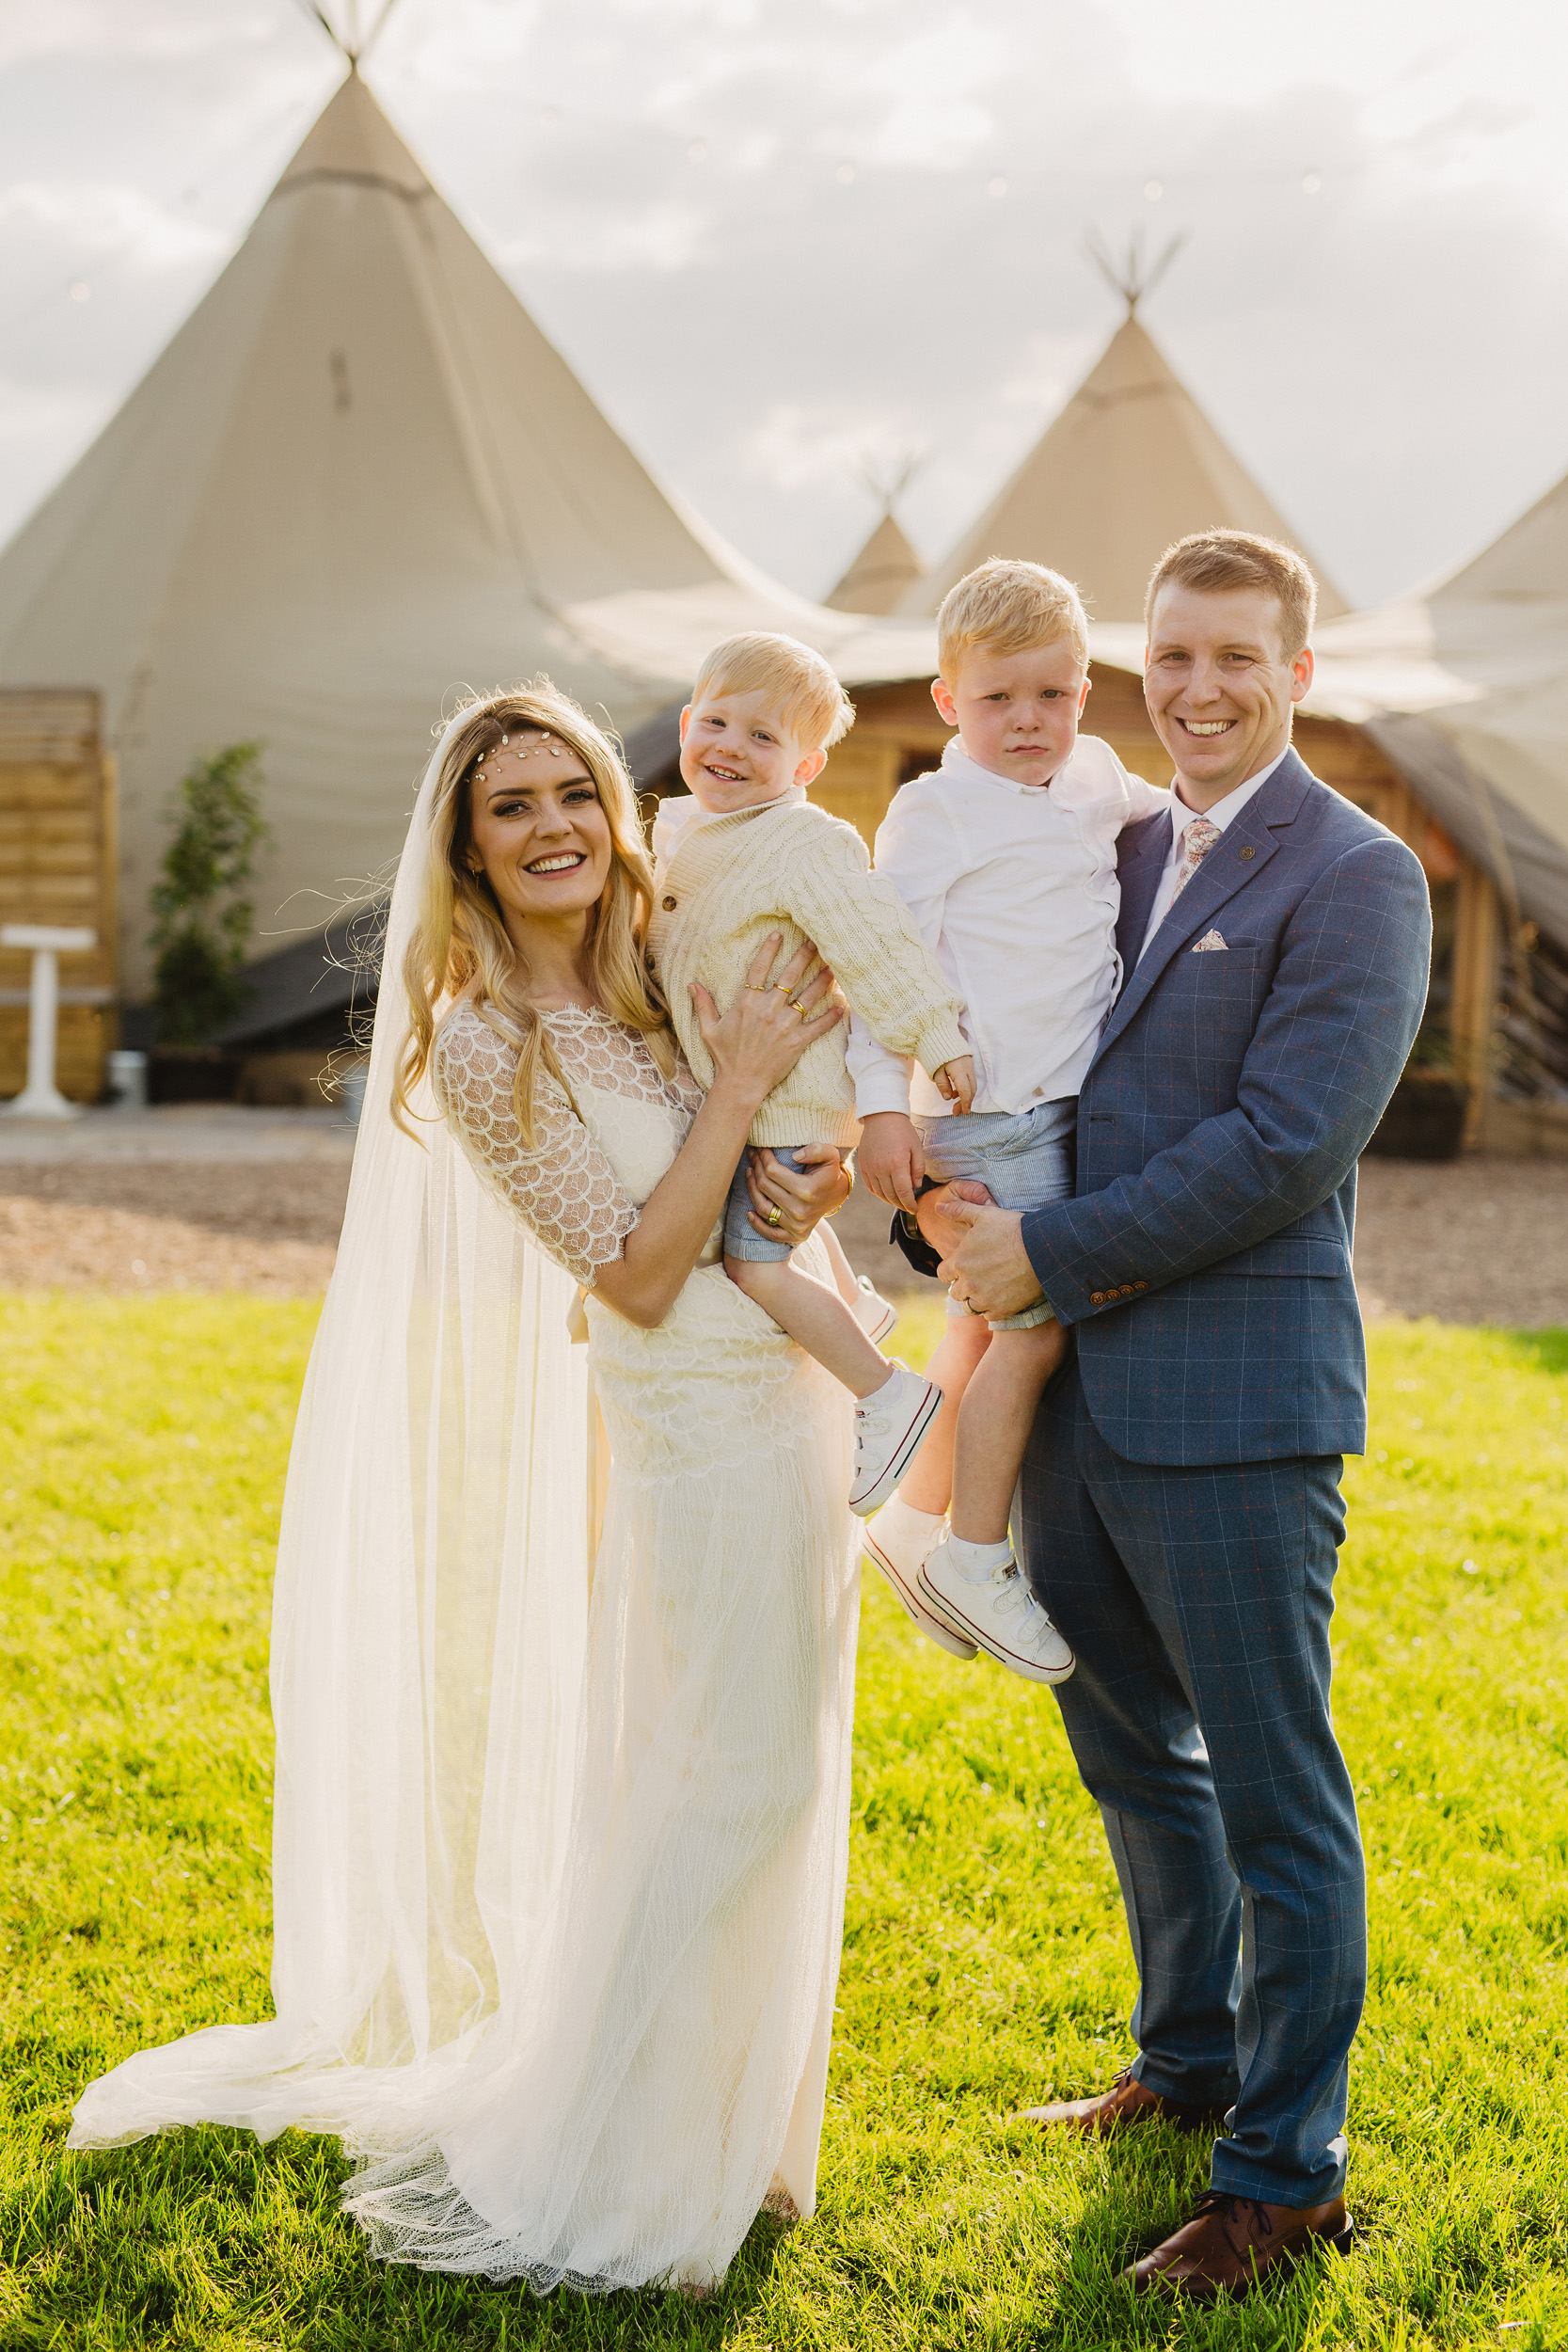 Gemma-Bohemian-Outdoor-Tipi-Wedding-Laid-Back-Relaxed-Family-Wedding-Kate-Beaumont-Astilbe-by-S6-Photography-Sheffield-40.jpg